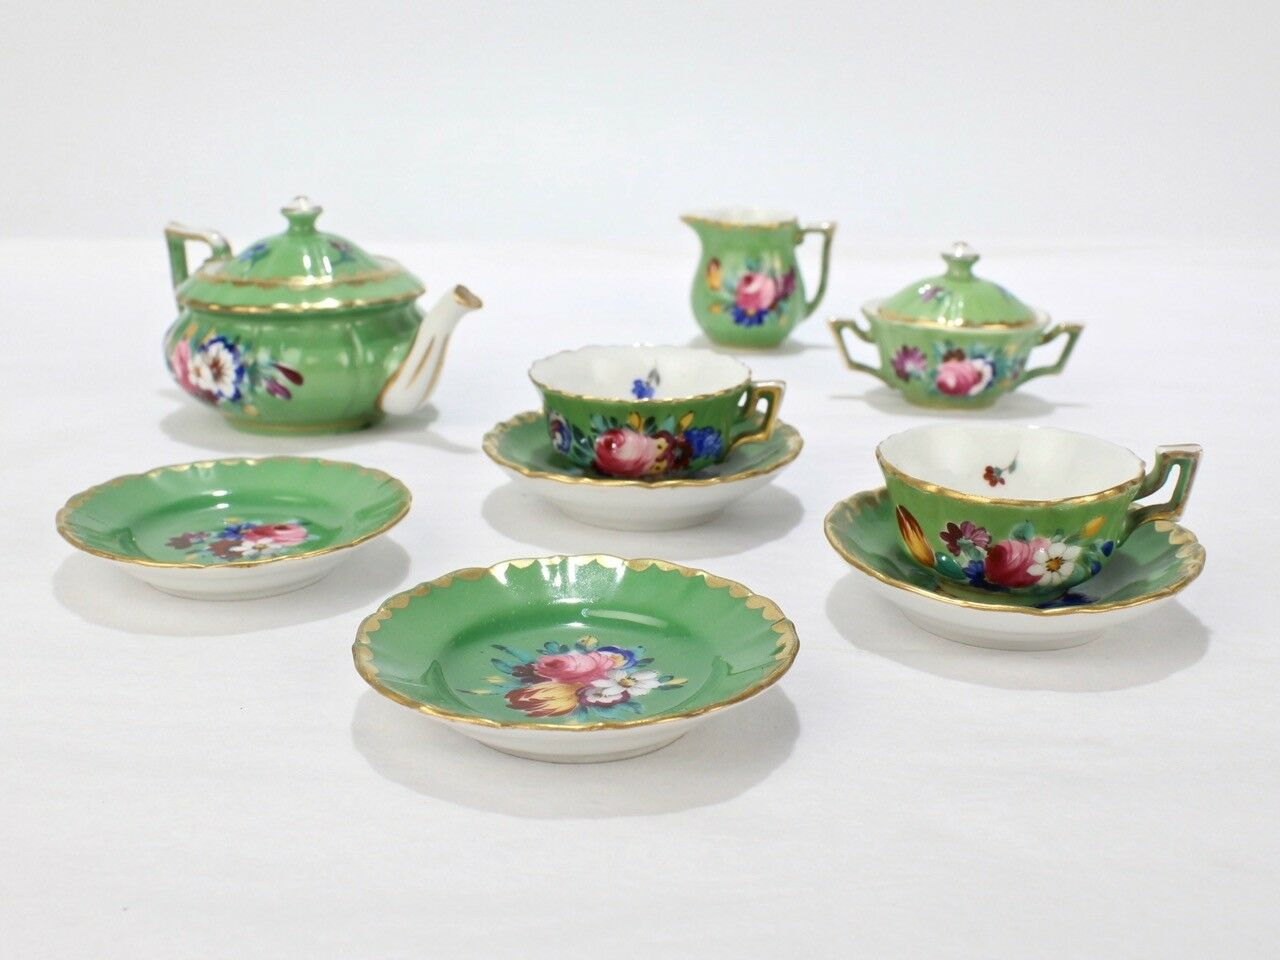 Antique Derby Porcelain Miniature Doll House Tea Set - English Miniature PC